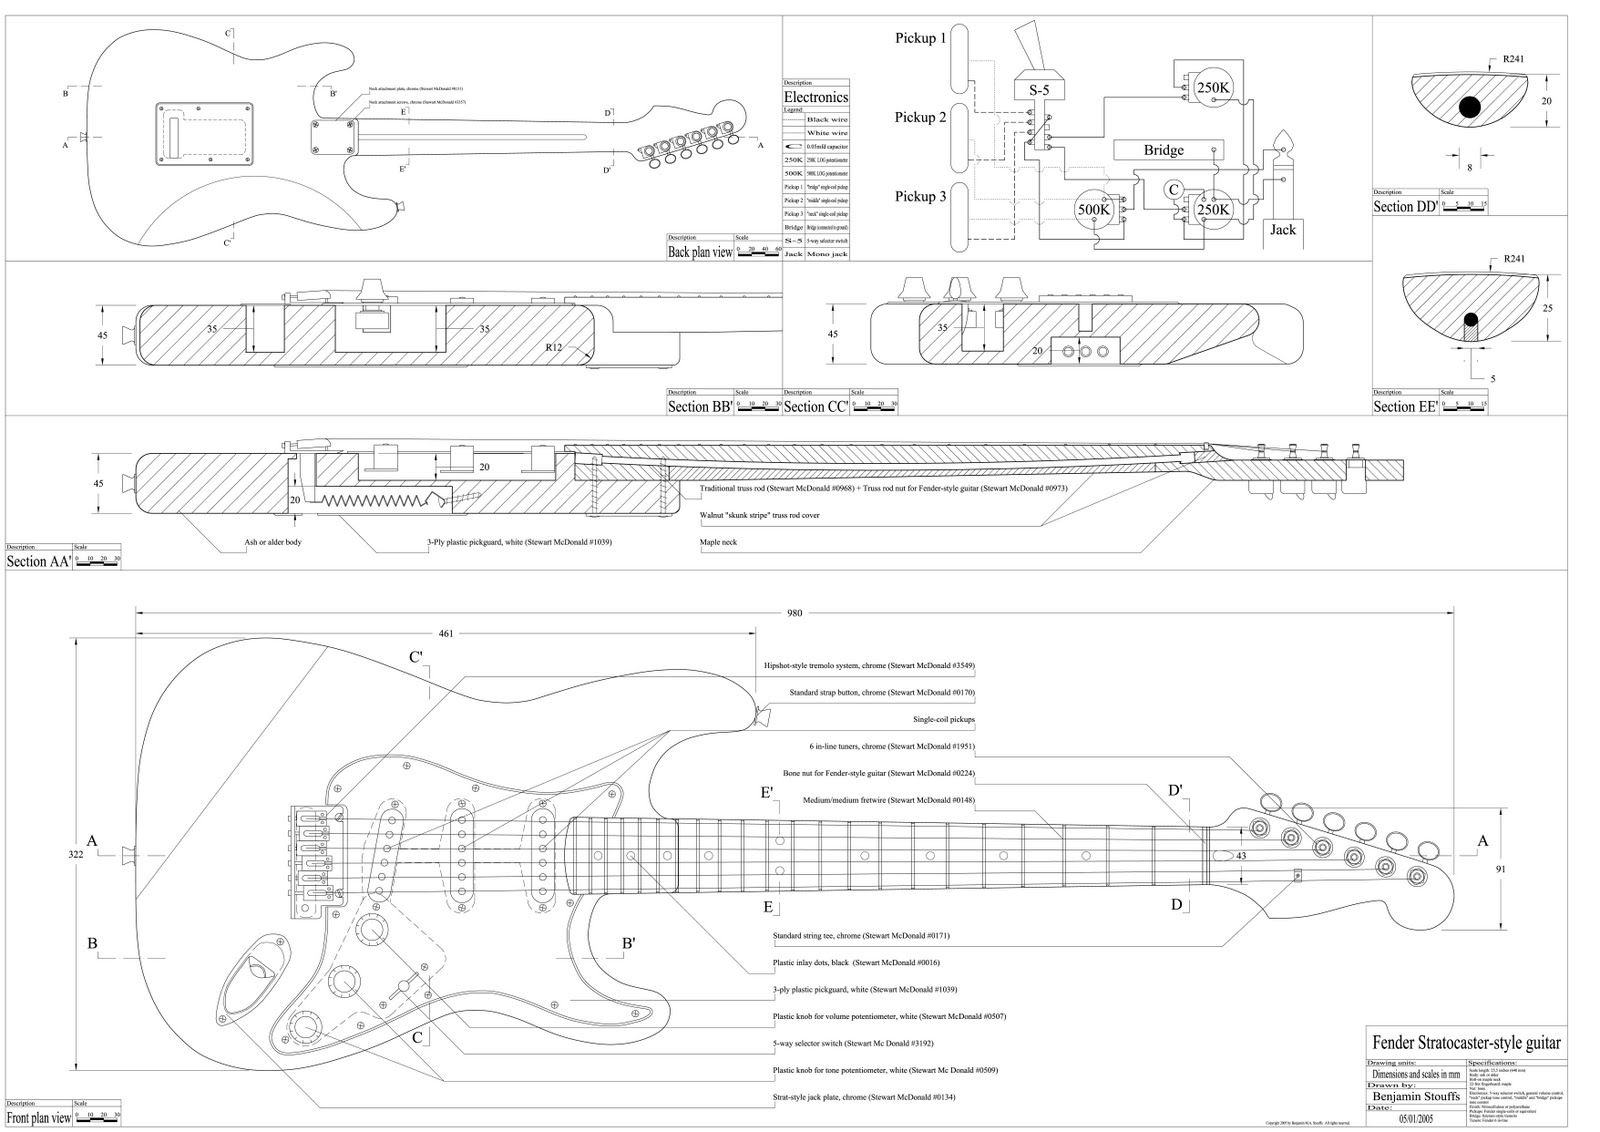 Stratocaster blueprint musical instrument pinterest guitars blueprint for a guitar i would like to build malvernweather Choice Image